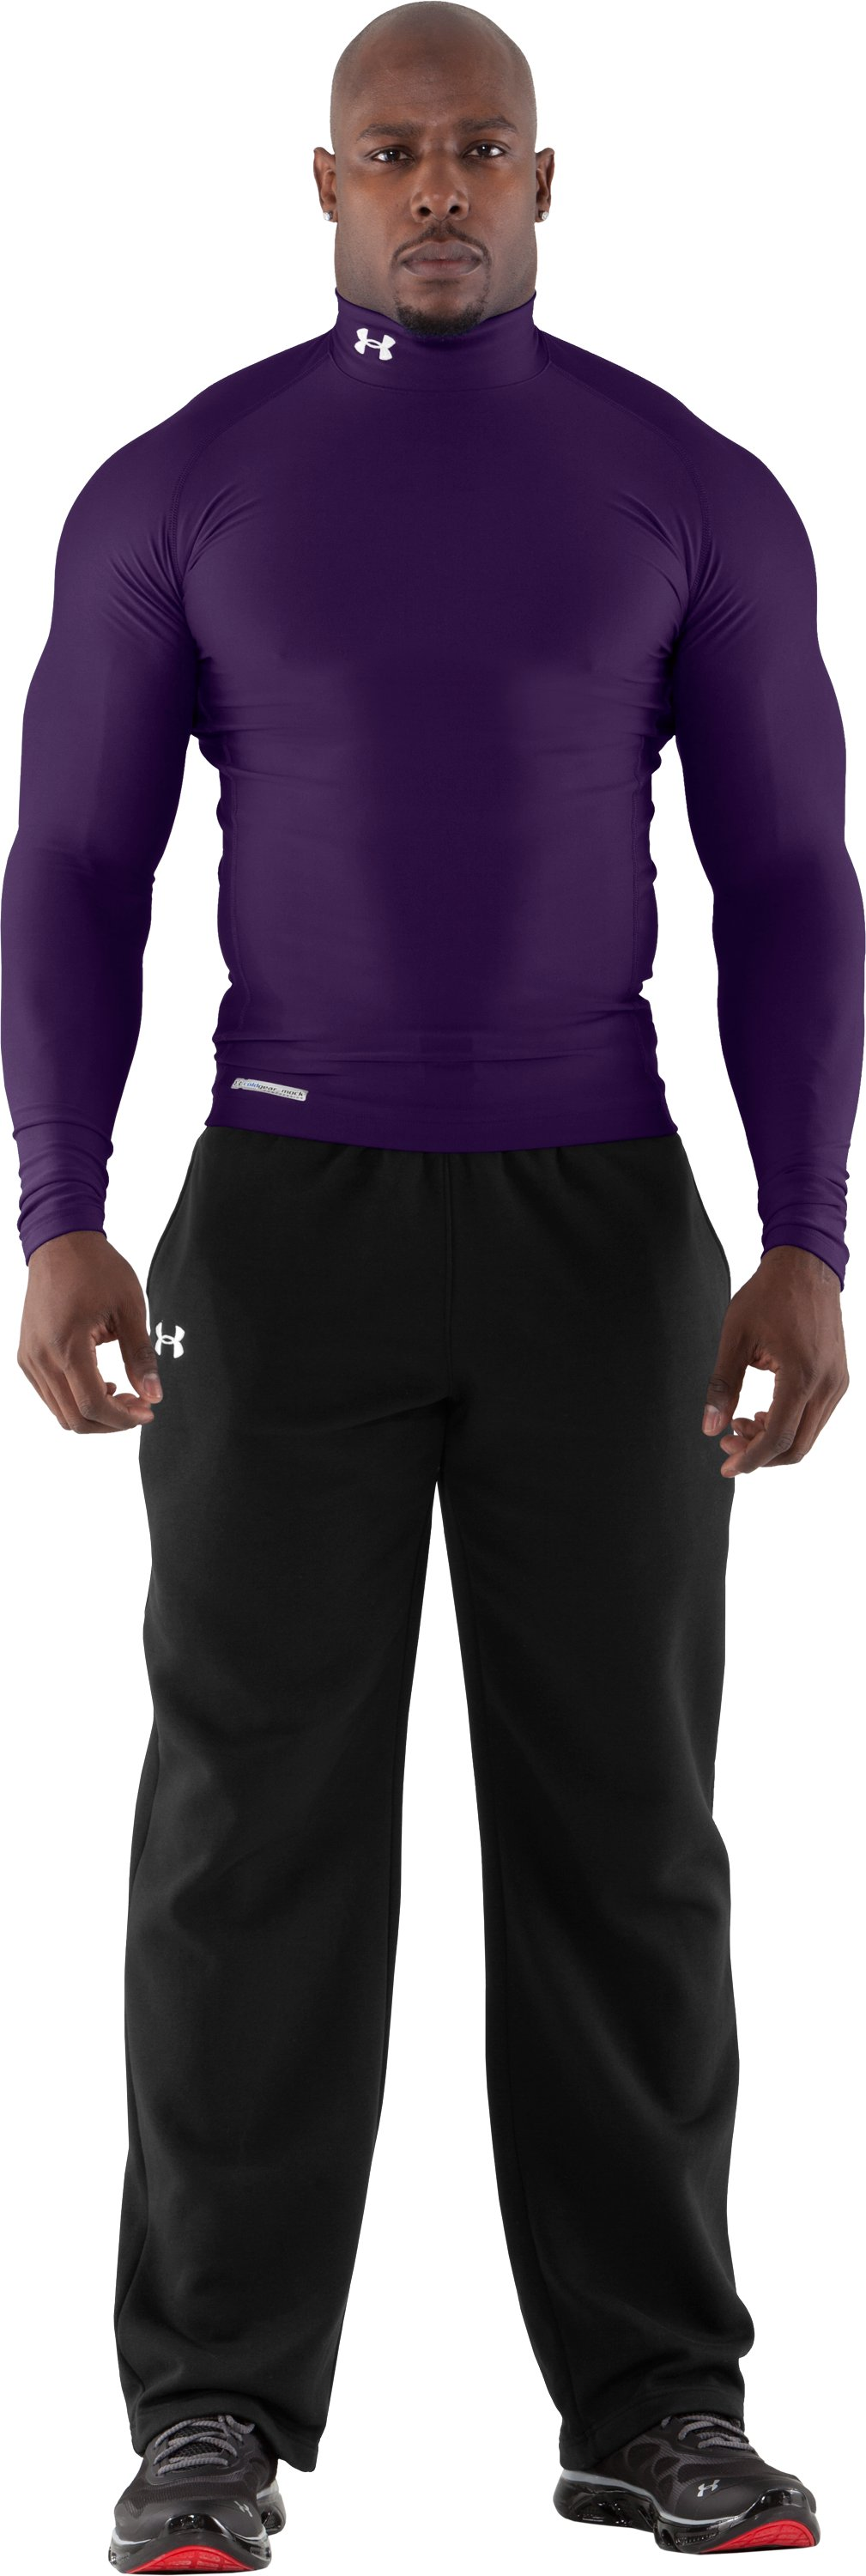 Men's ColdGear® Evo Long Sleeve Compression Mock, Purple, zoomed image